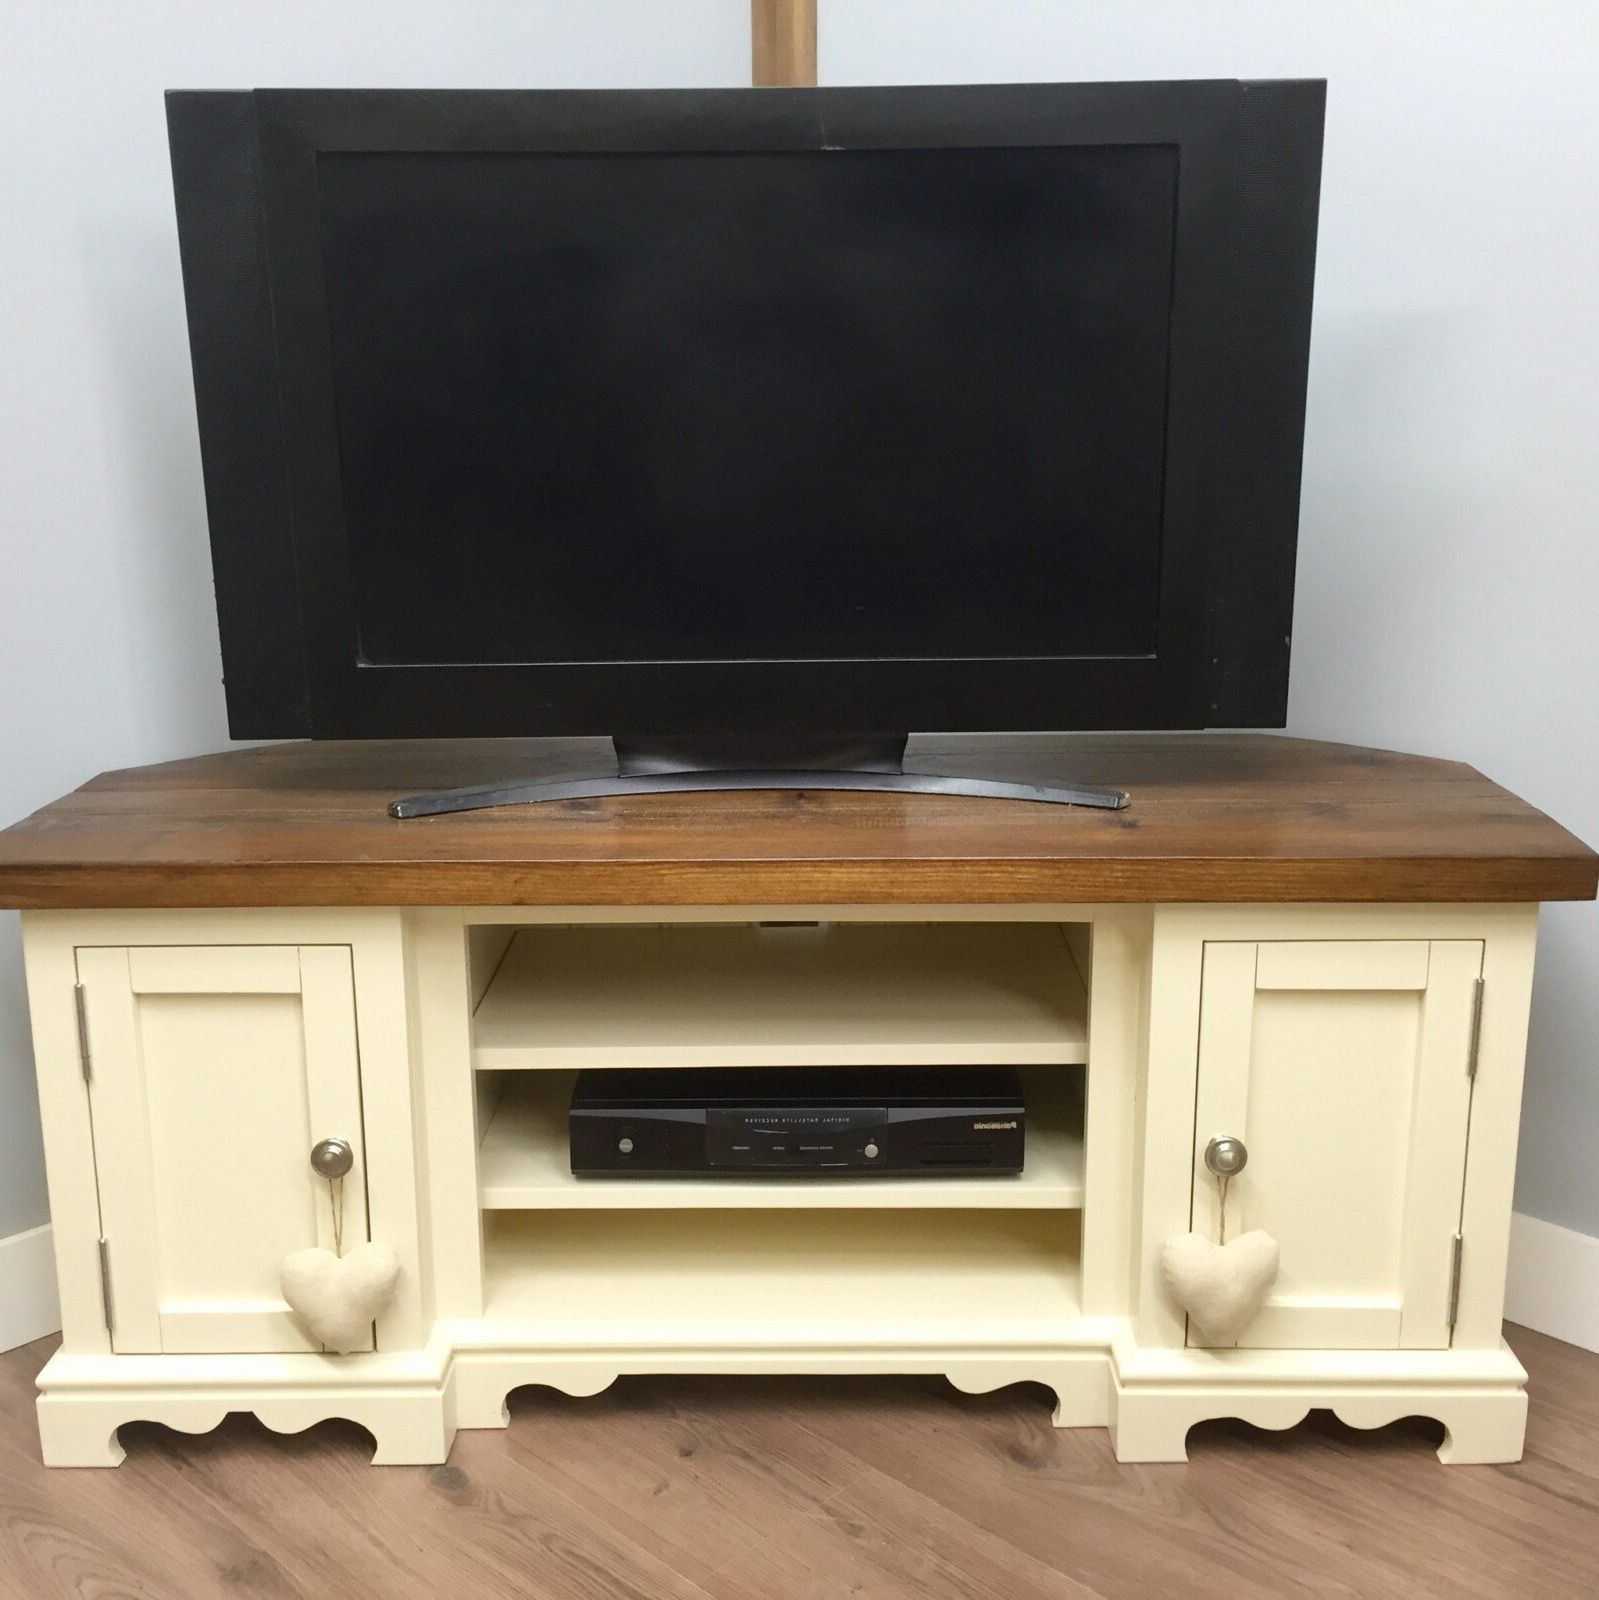 Shaped Farmhouse Corner Tv Stand With 2 Doors – Farmhouse Regarding Avalene Rustic Farmhouse Corner Tv Stands (View 4 of 20)